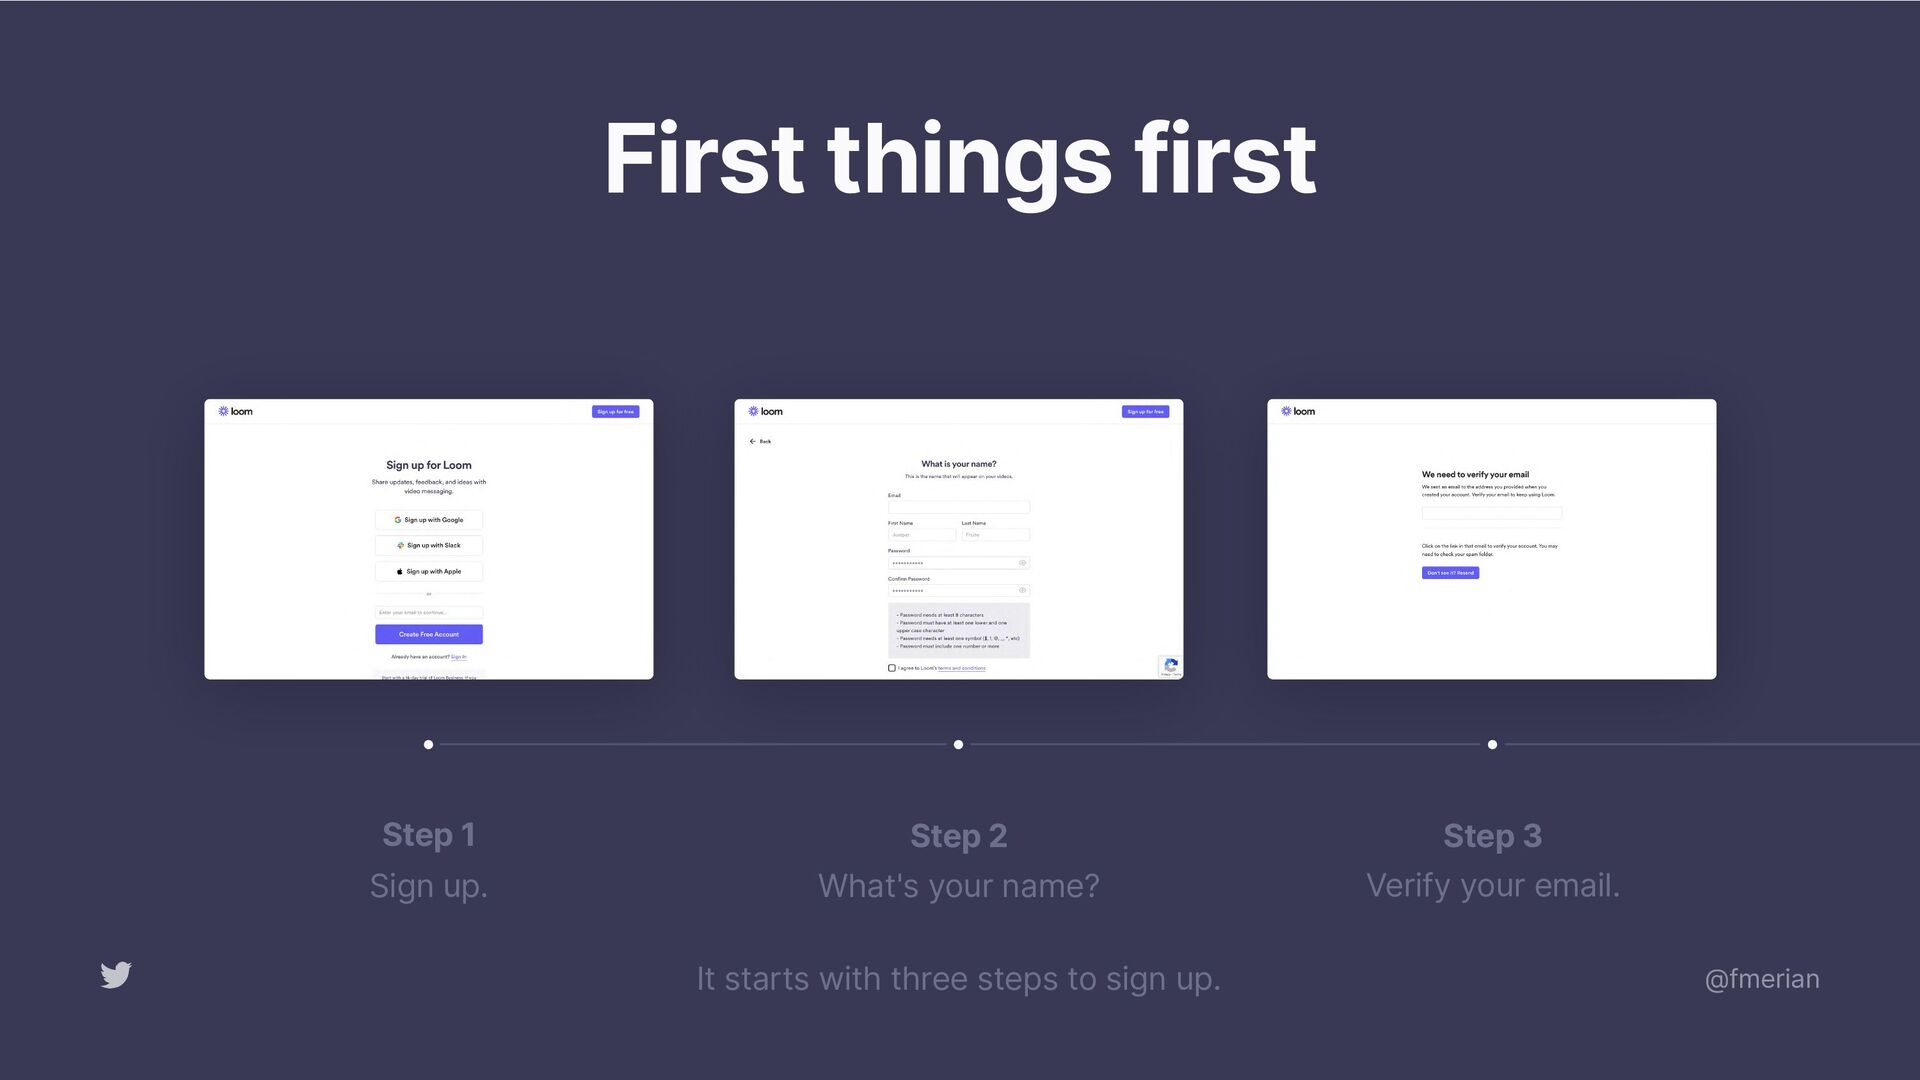 The Loom onboarding flow helps personalize the ...